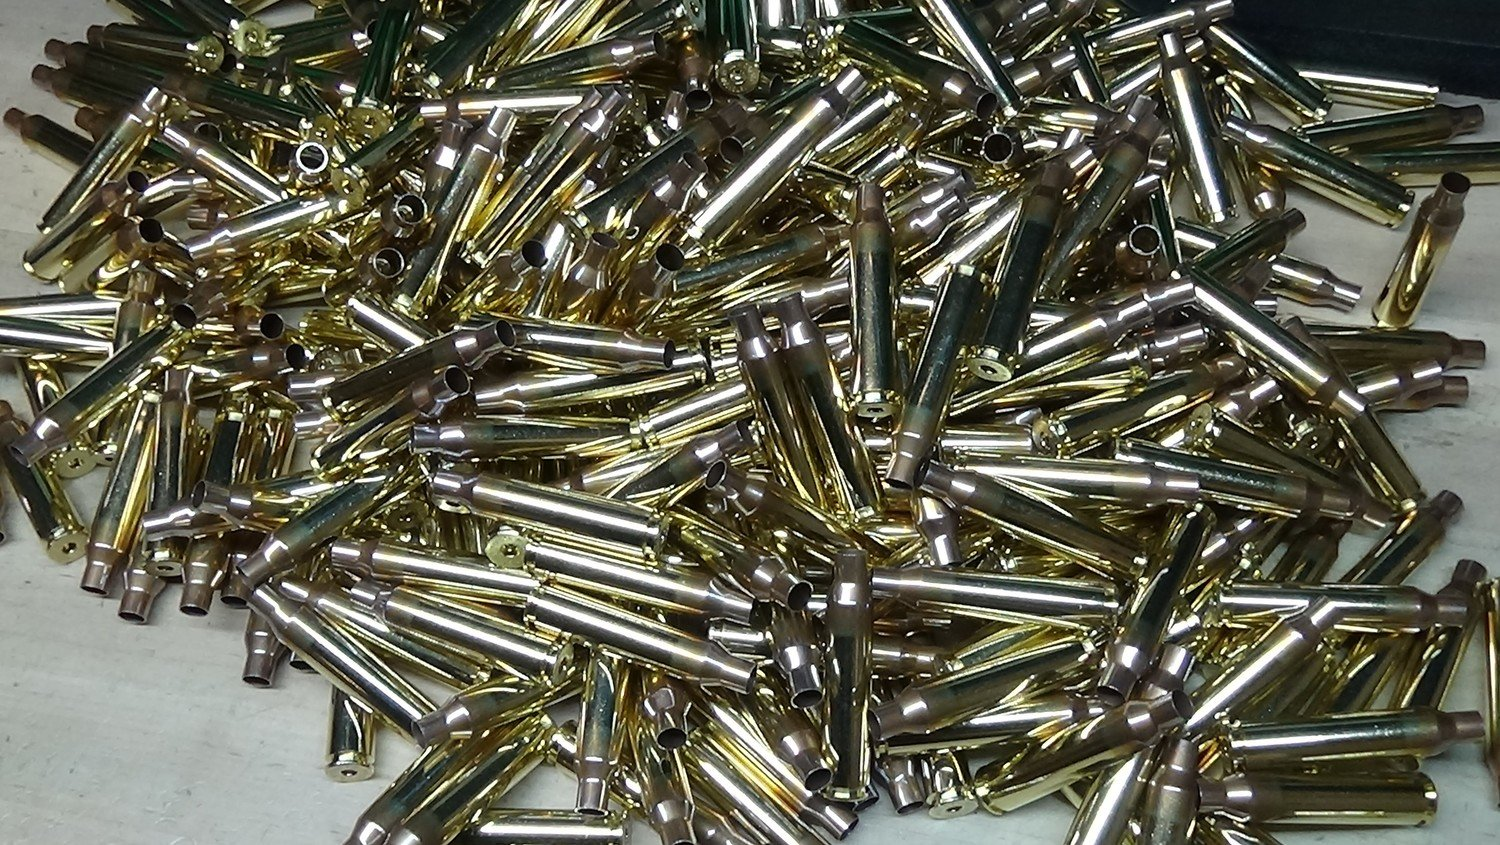 BULK PRICING!! 6.5 Creedmoor Fat-Neck™ Cartridge - Box of 1,000